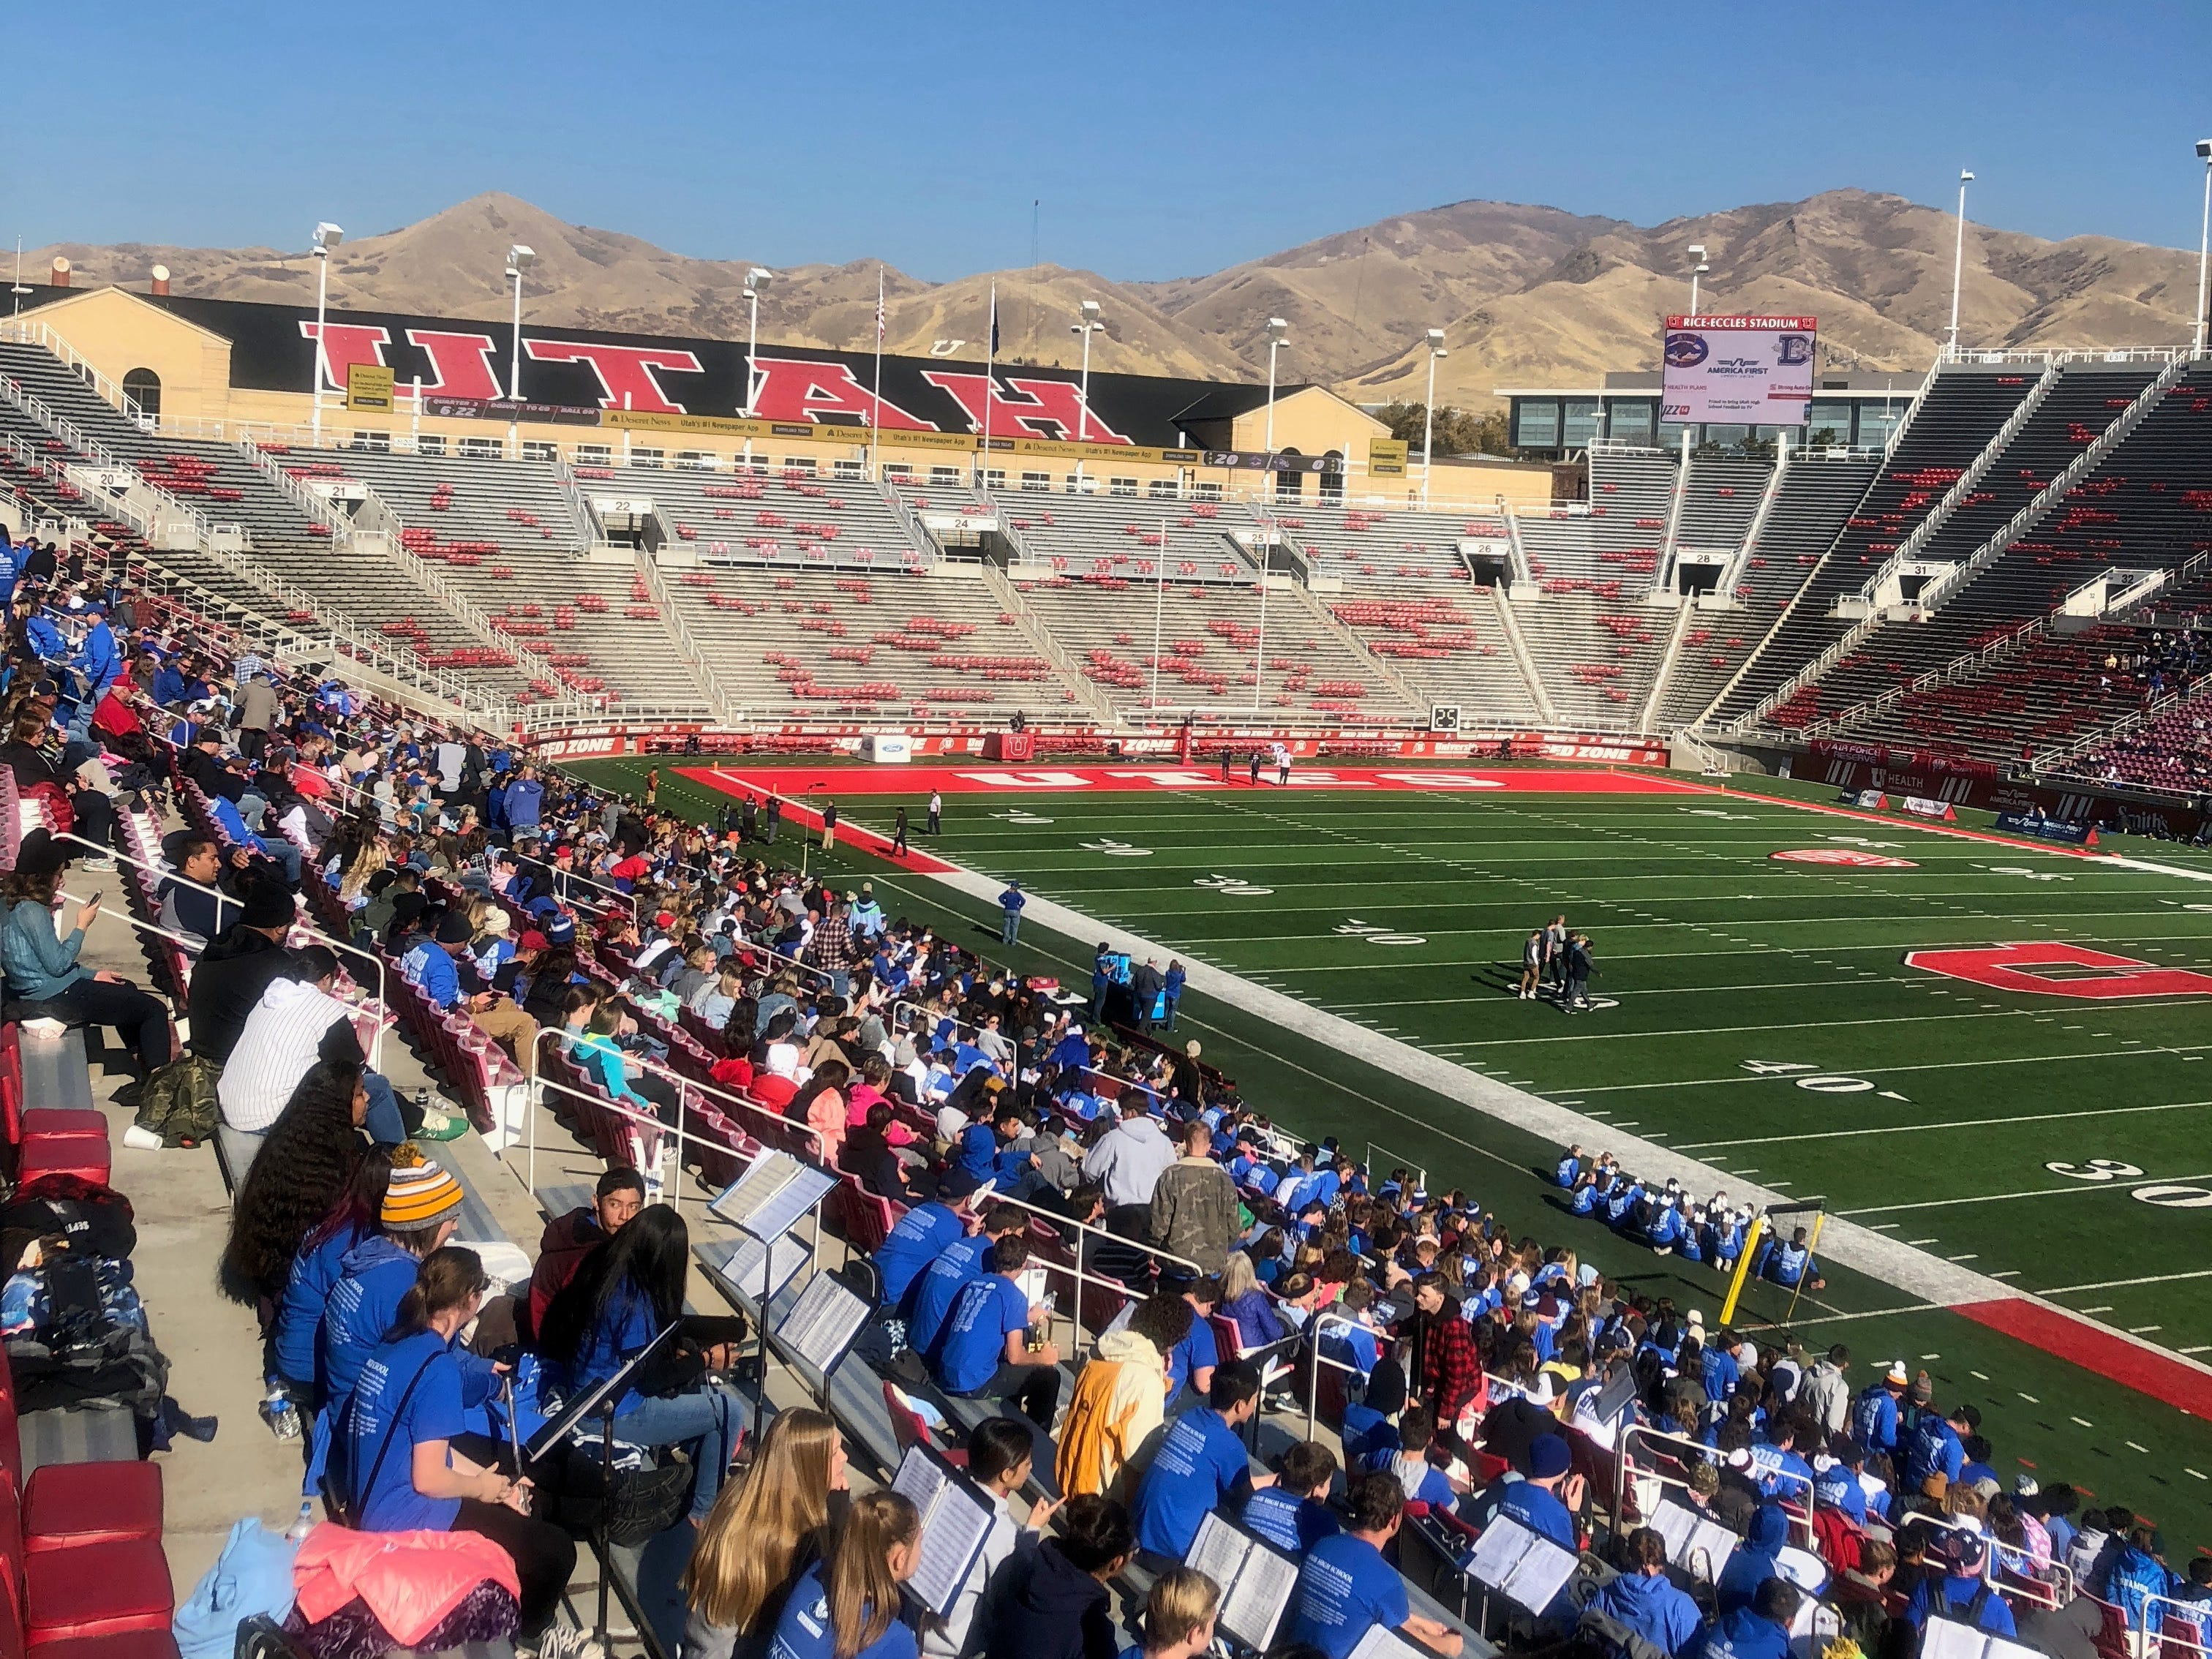 Dixie was trailing Orem heading into the third quarter of the state championship game at Rice-Eccles Stadium in Salt Lake City on Nov. 16, 2018.